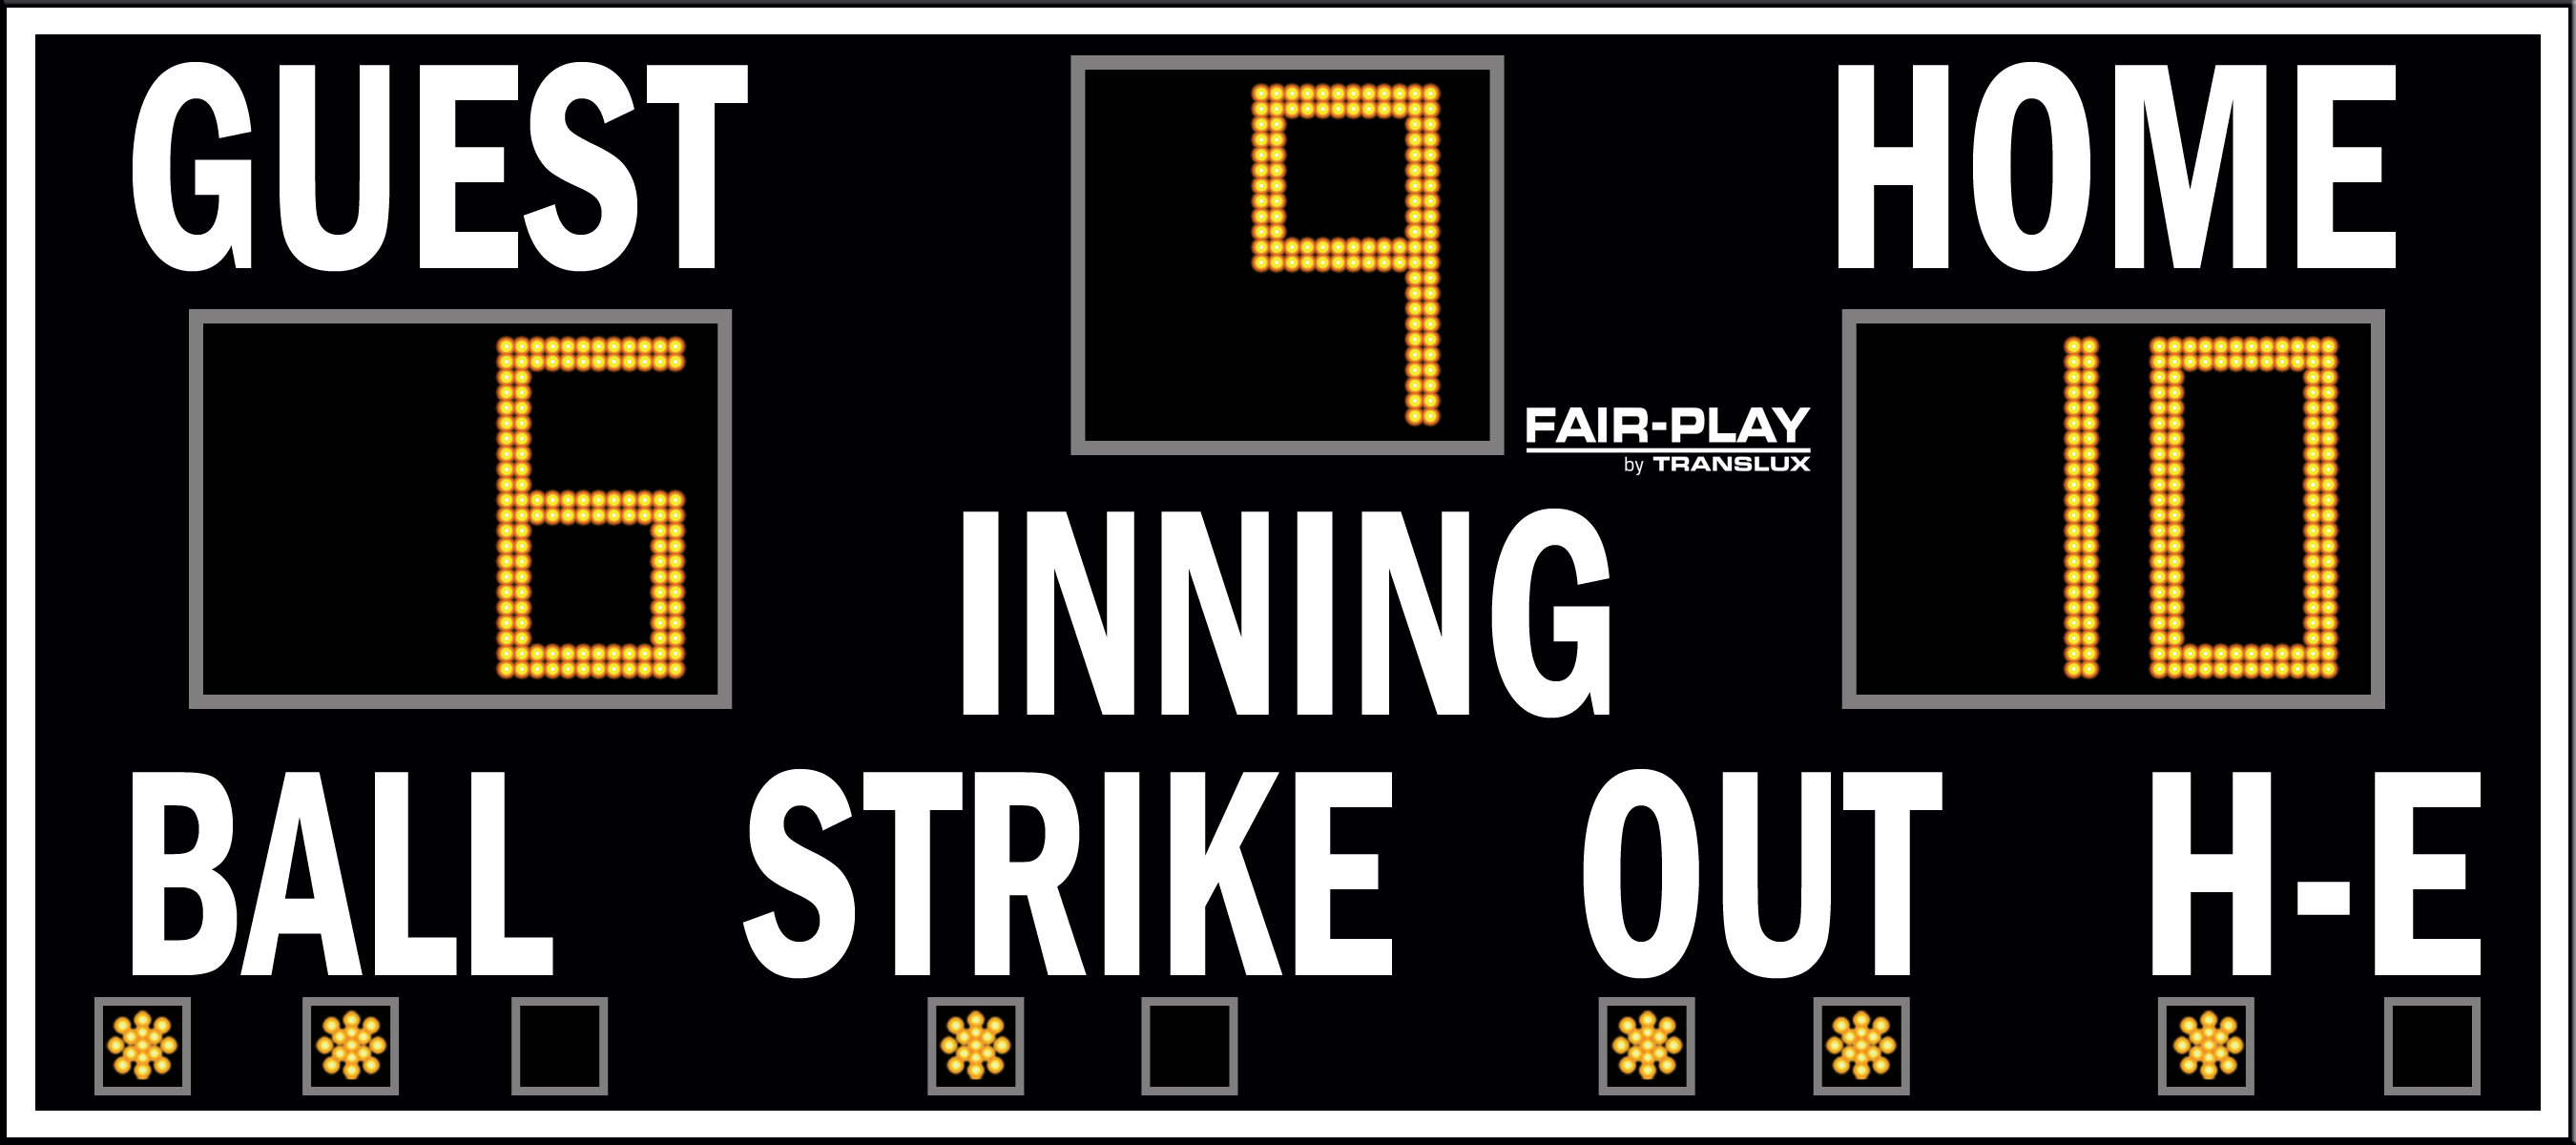 Fair-Play BA-7109-2 Baseball Scoreboard (4′ x 9′)